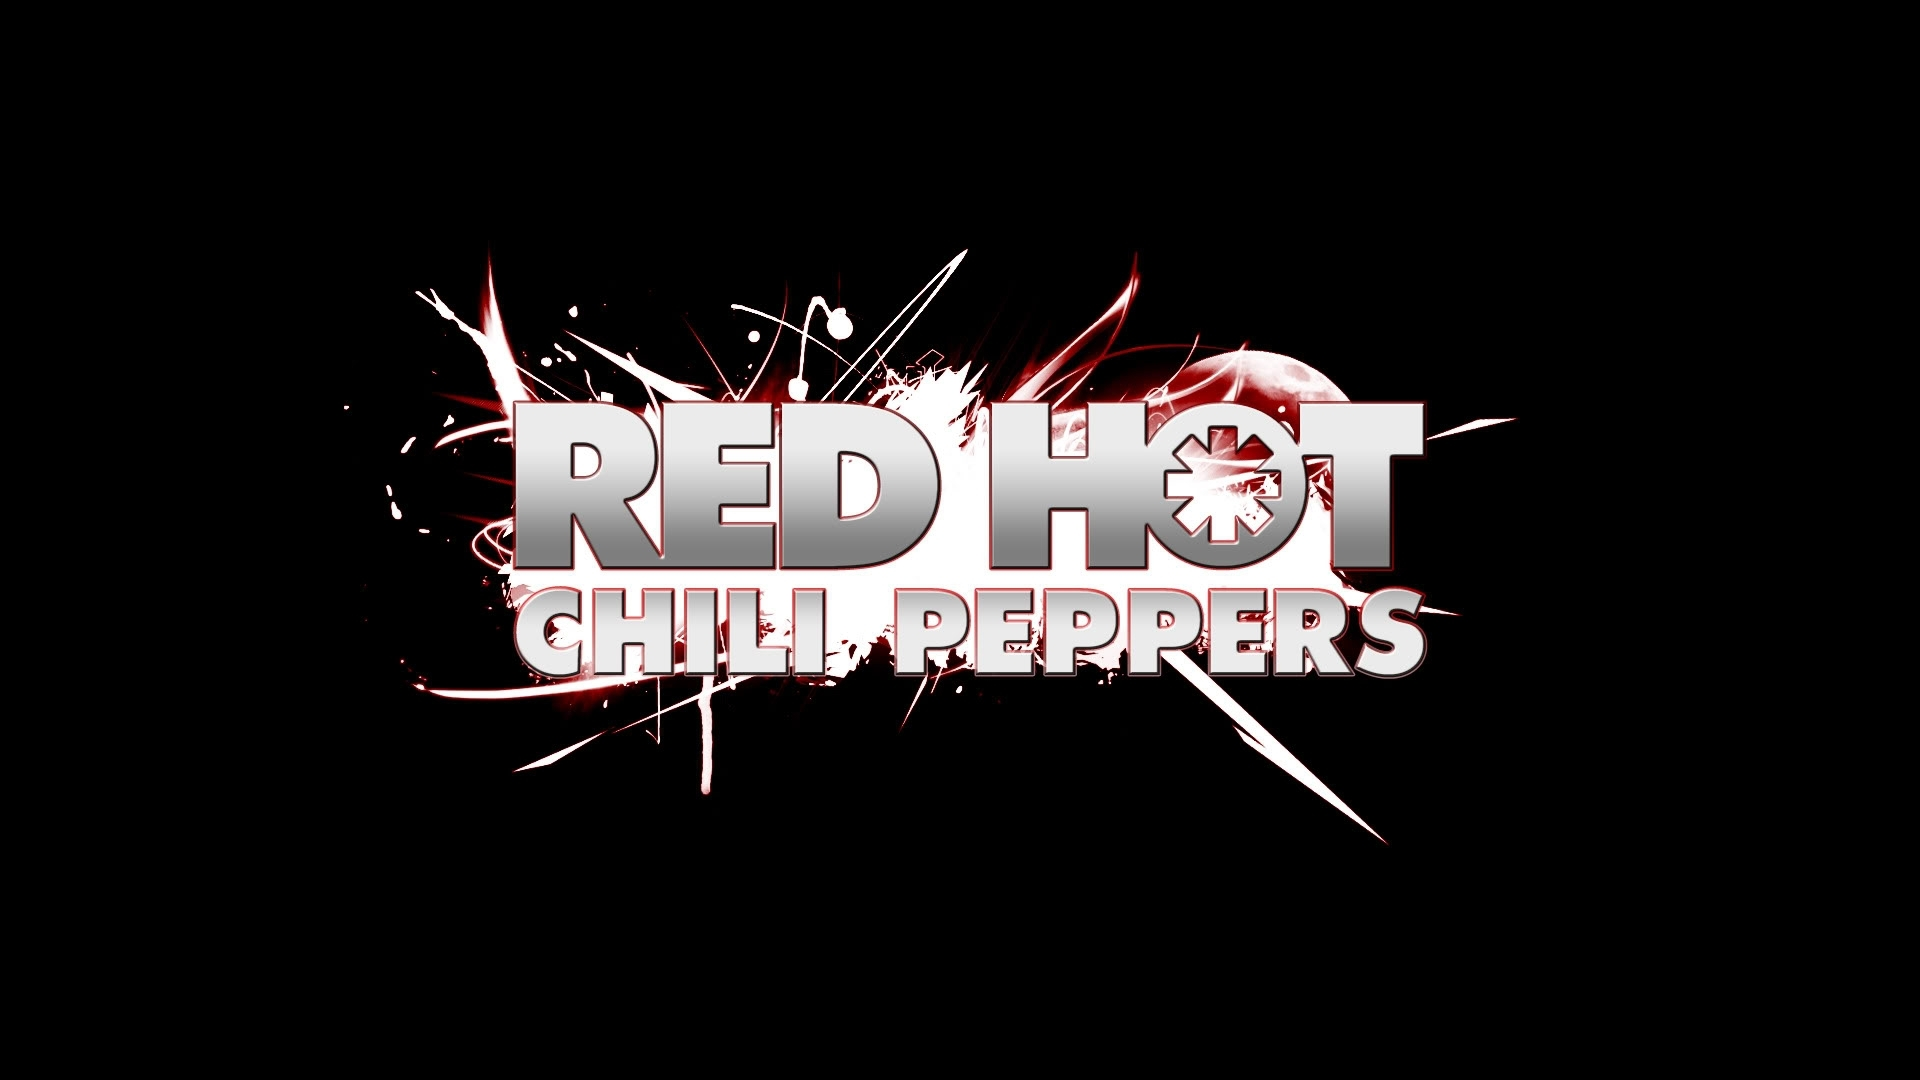 Red Hot Chili Peppers Hd Wallpaper Background Image 1920x1080